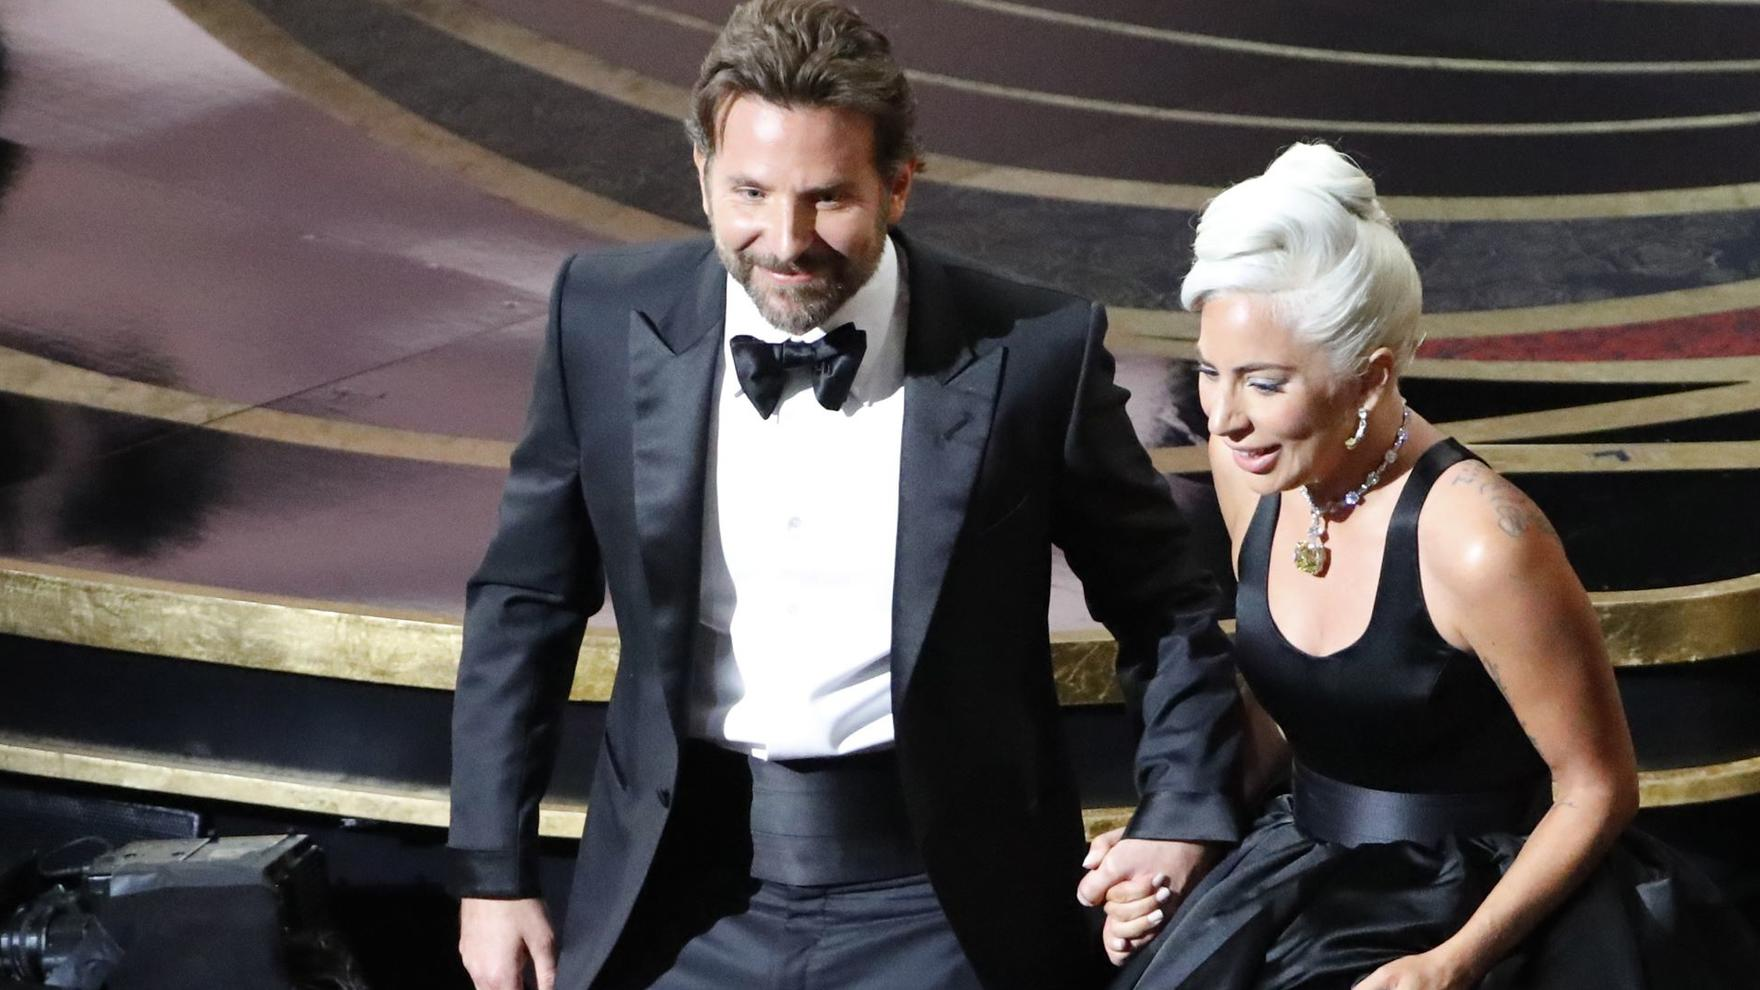 "91st Academy Awards - Oscars Show - Hollywood, Los Angeles, California, U.S., February 24, 2019. Lady Gaga and Bradley Cooper depart the stage after performing ""Shallow"" from ""A Star Is Born."" REUTERS/Mike Blake"